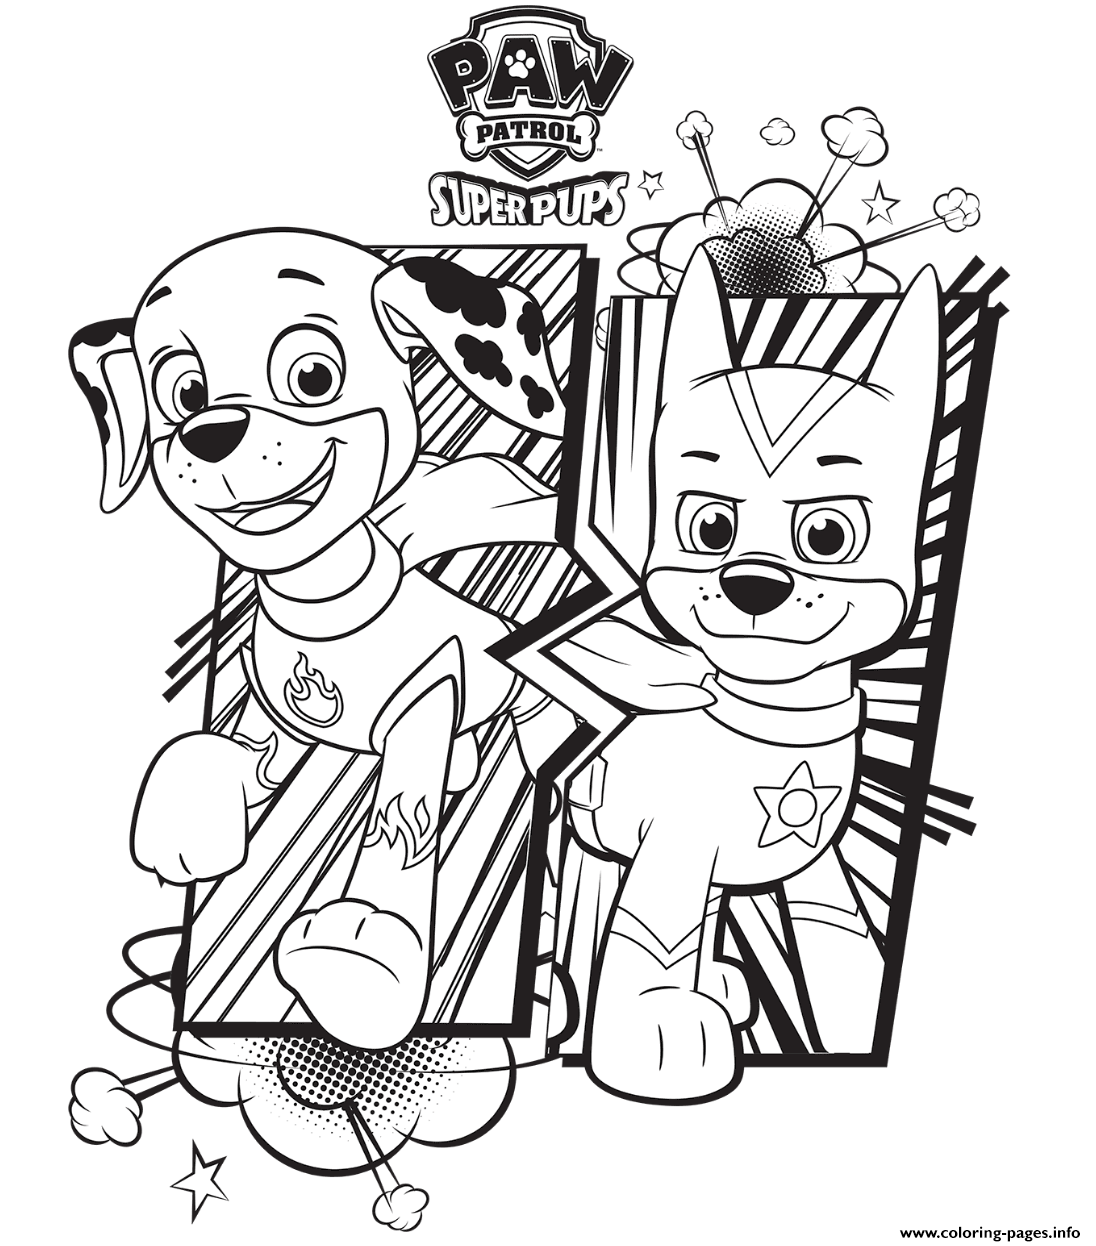 graphic relating to Printable Paw Patrol Coloring Pages called No cost PAW Patrol Coloring Web pages - Joy is Home made